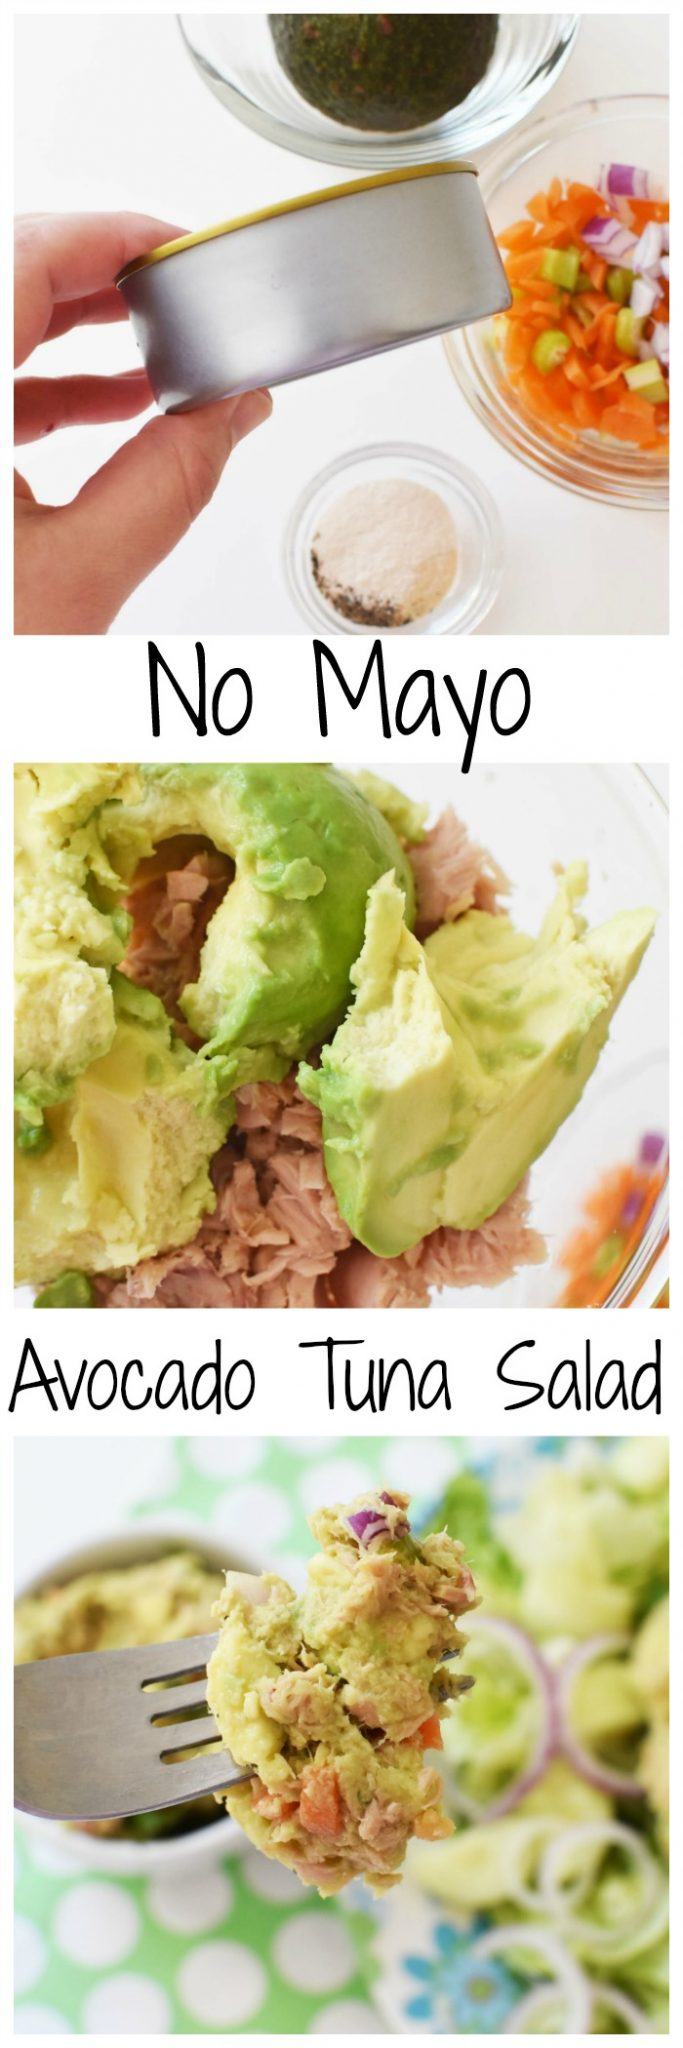 No Mayo Avocado Tuna Salad